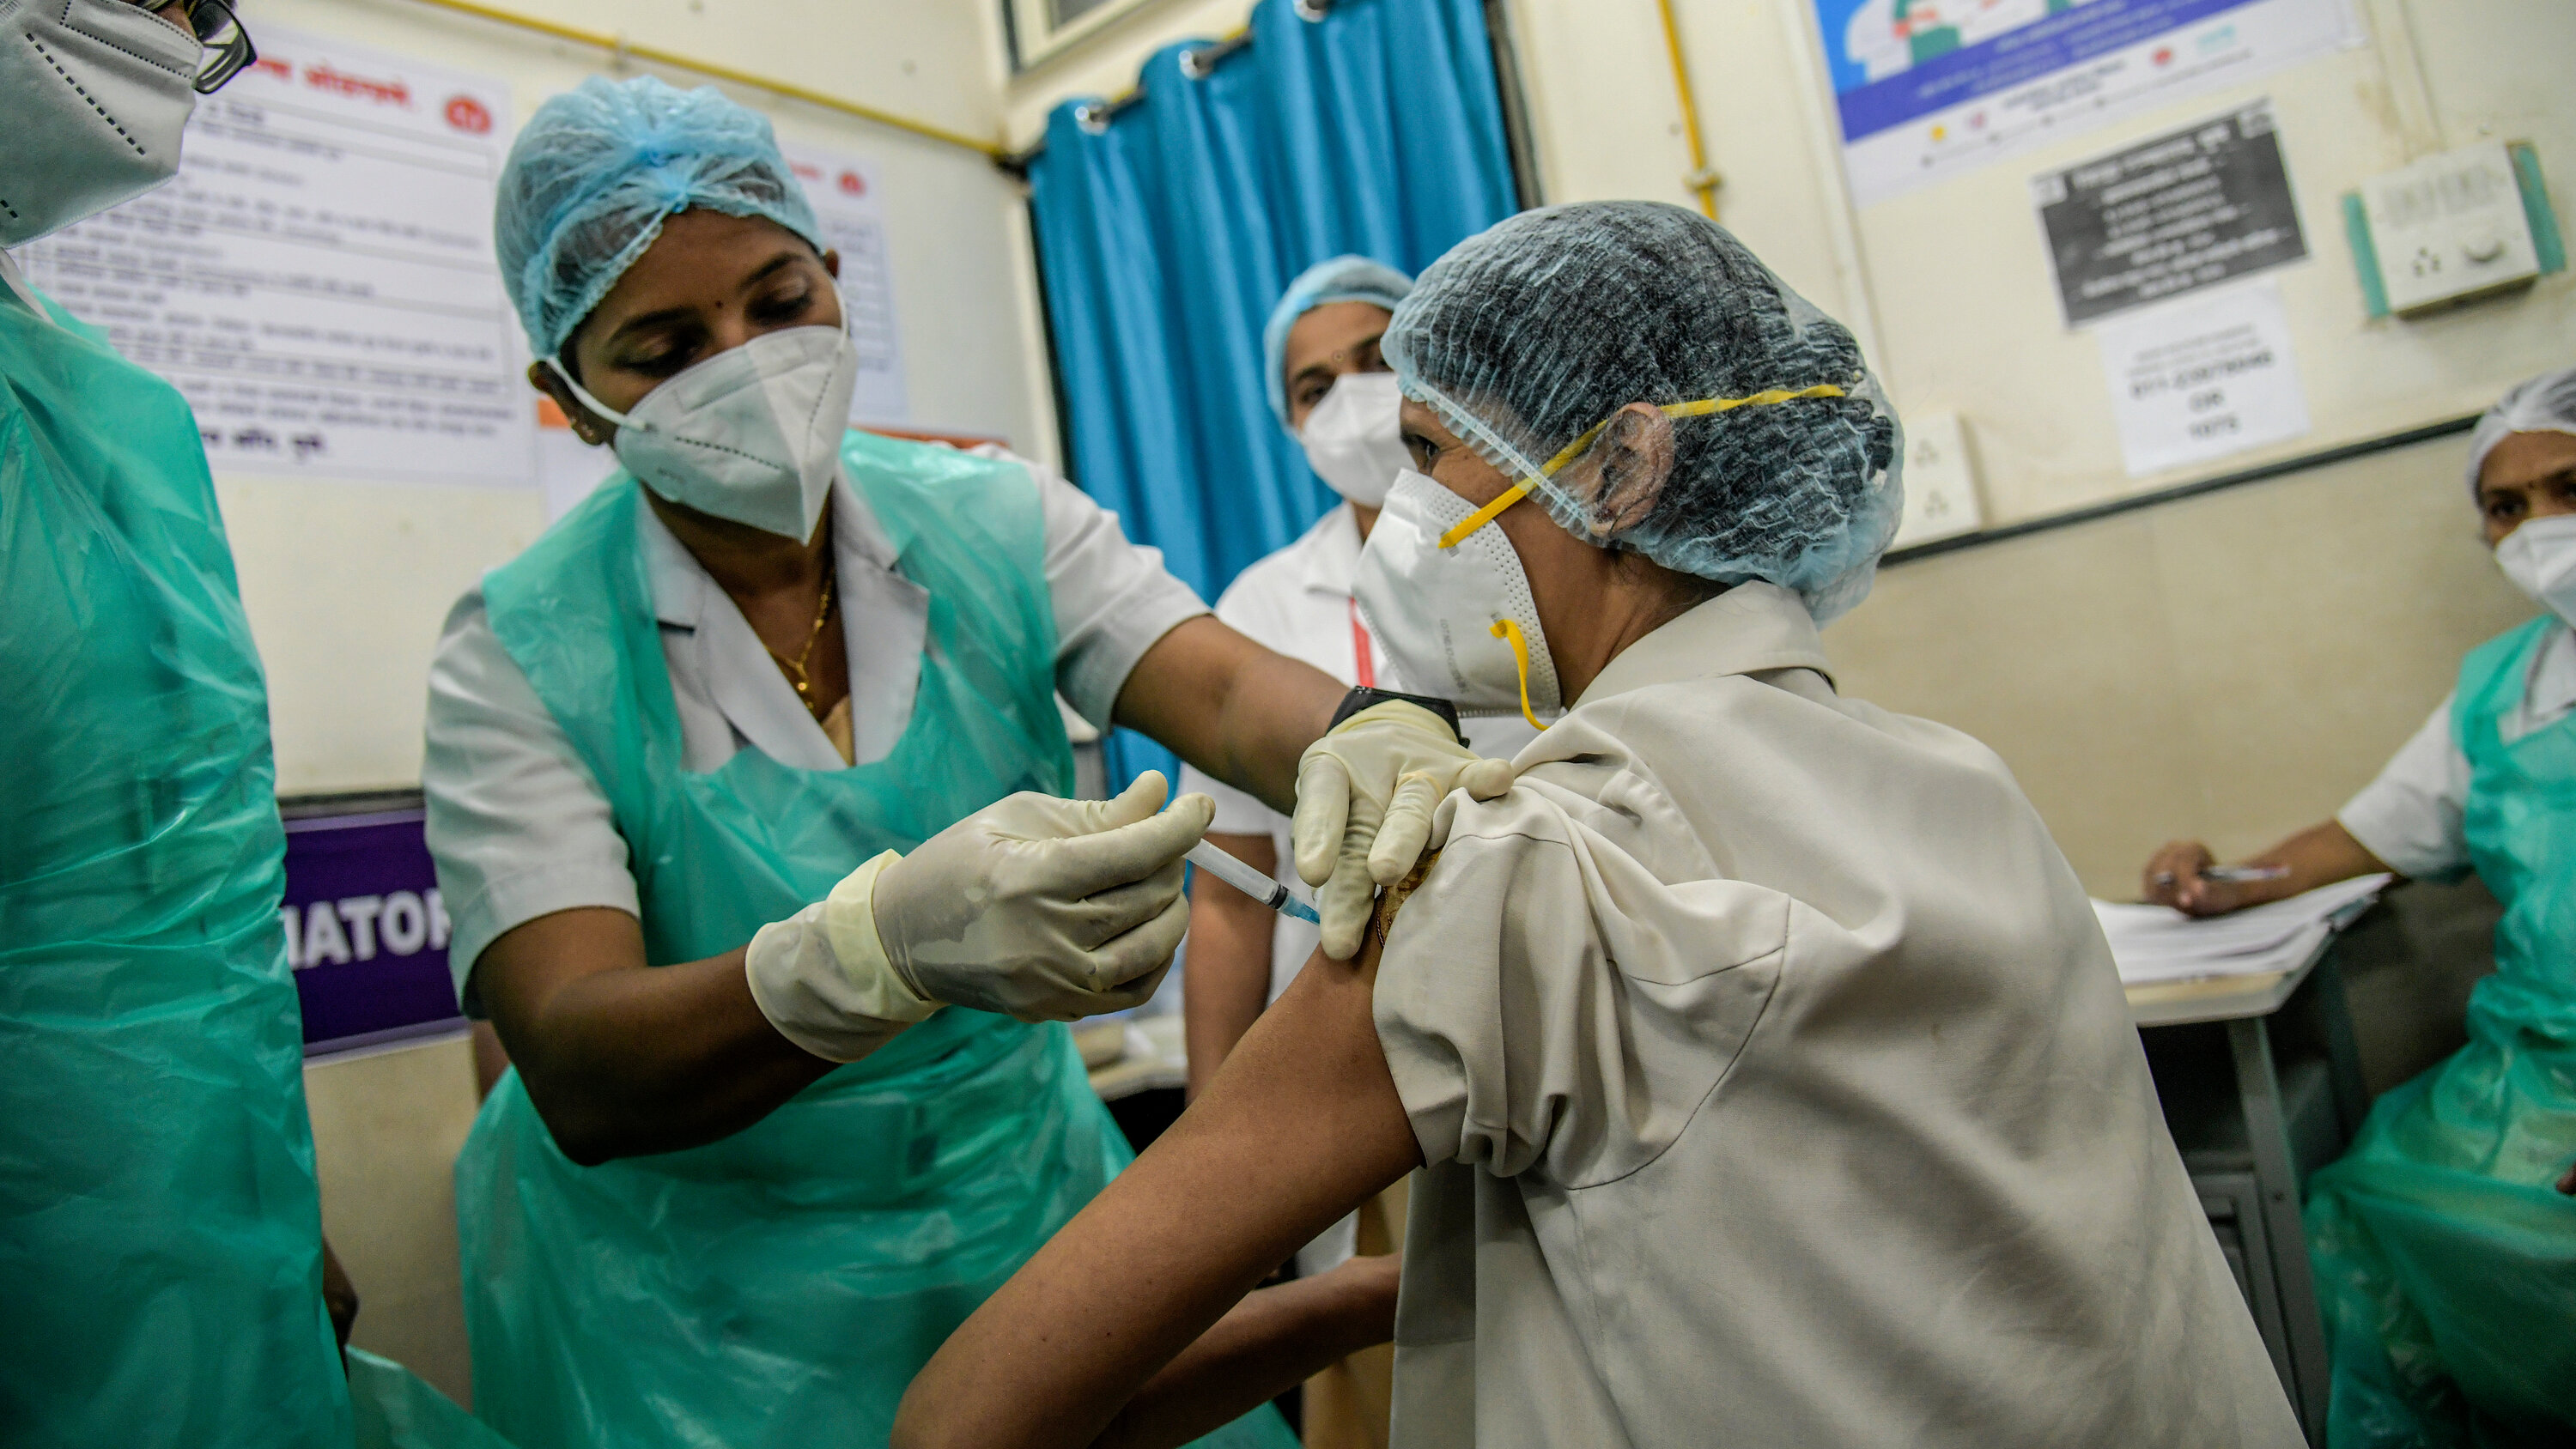 Vaccination rollout in India